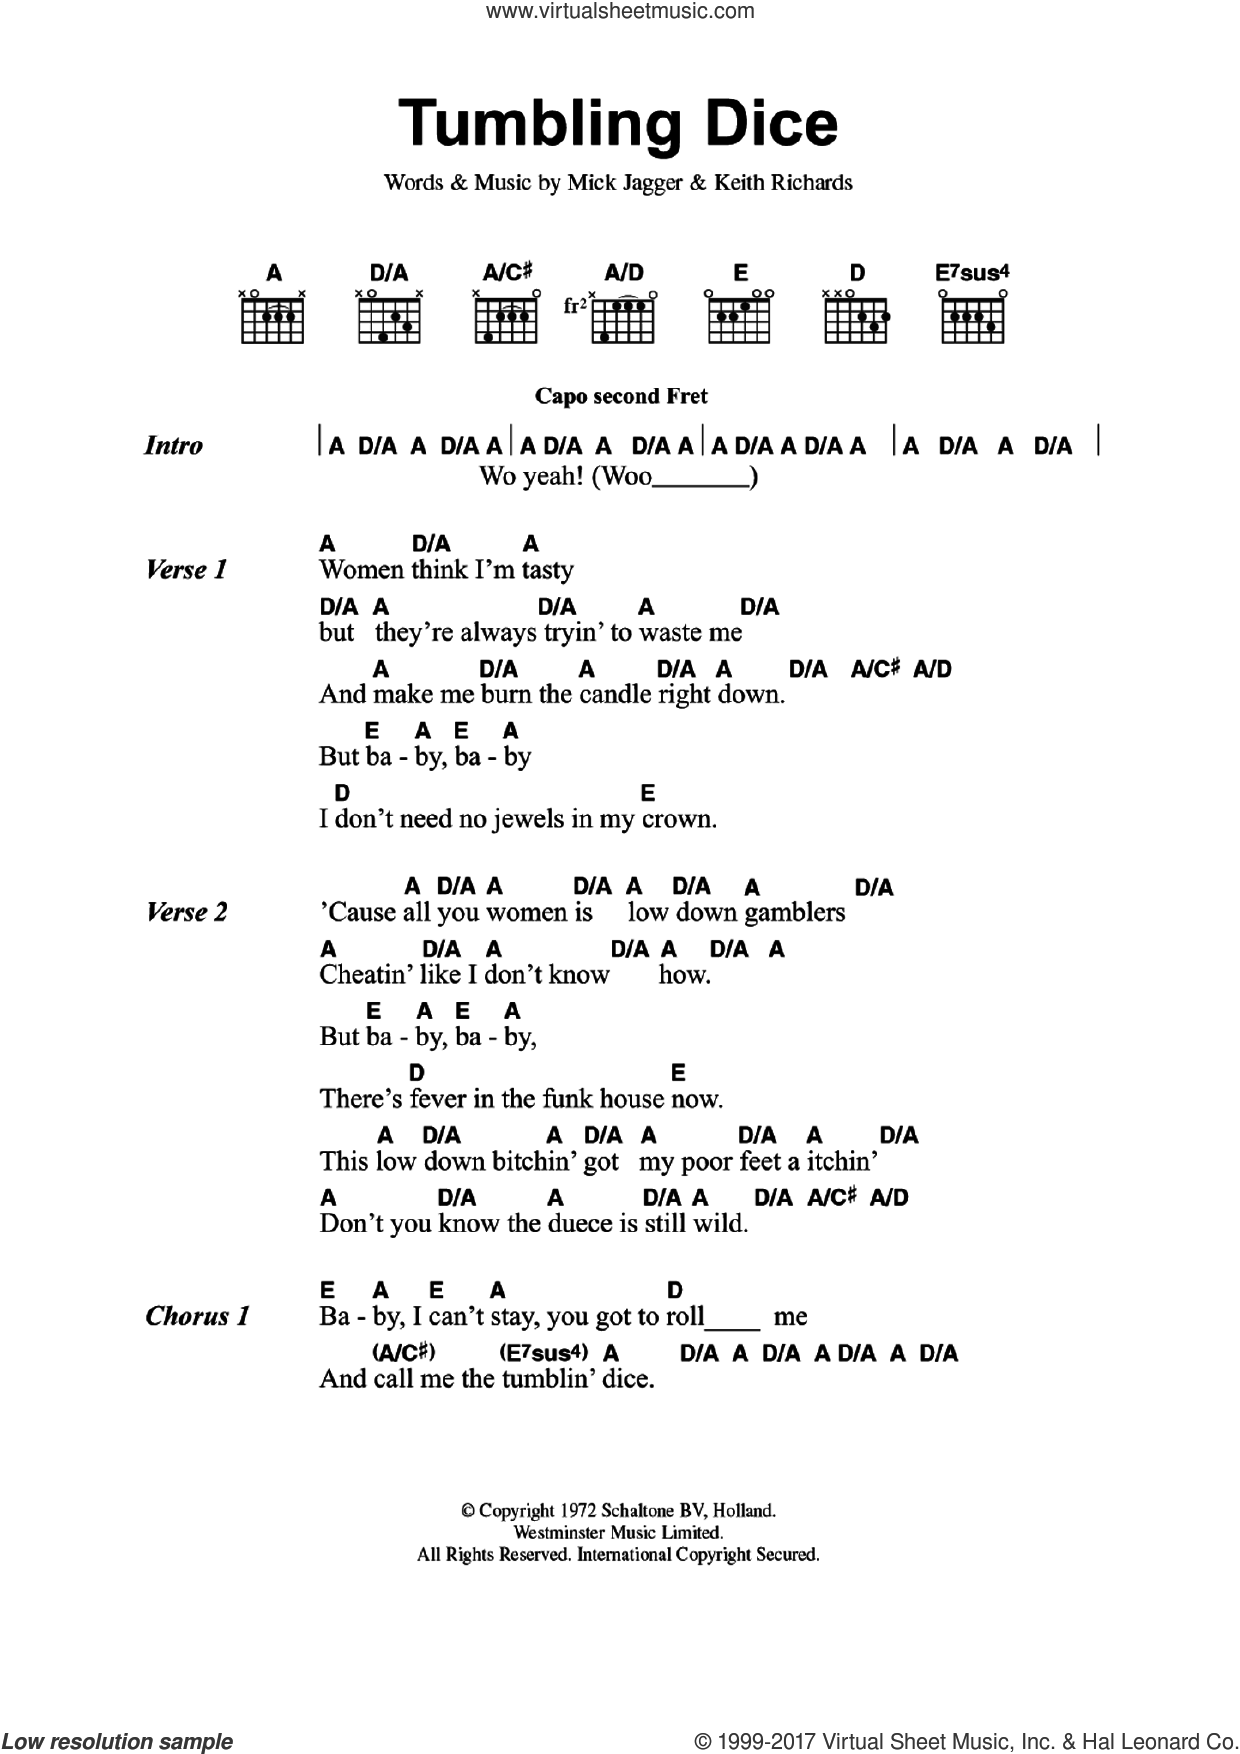 Tumbling Dice sheet music for guitar (chords) by The Rolling Stones, Keith Richards and Mick Jagger, intermediate